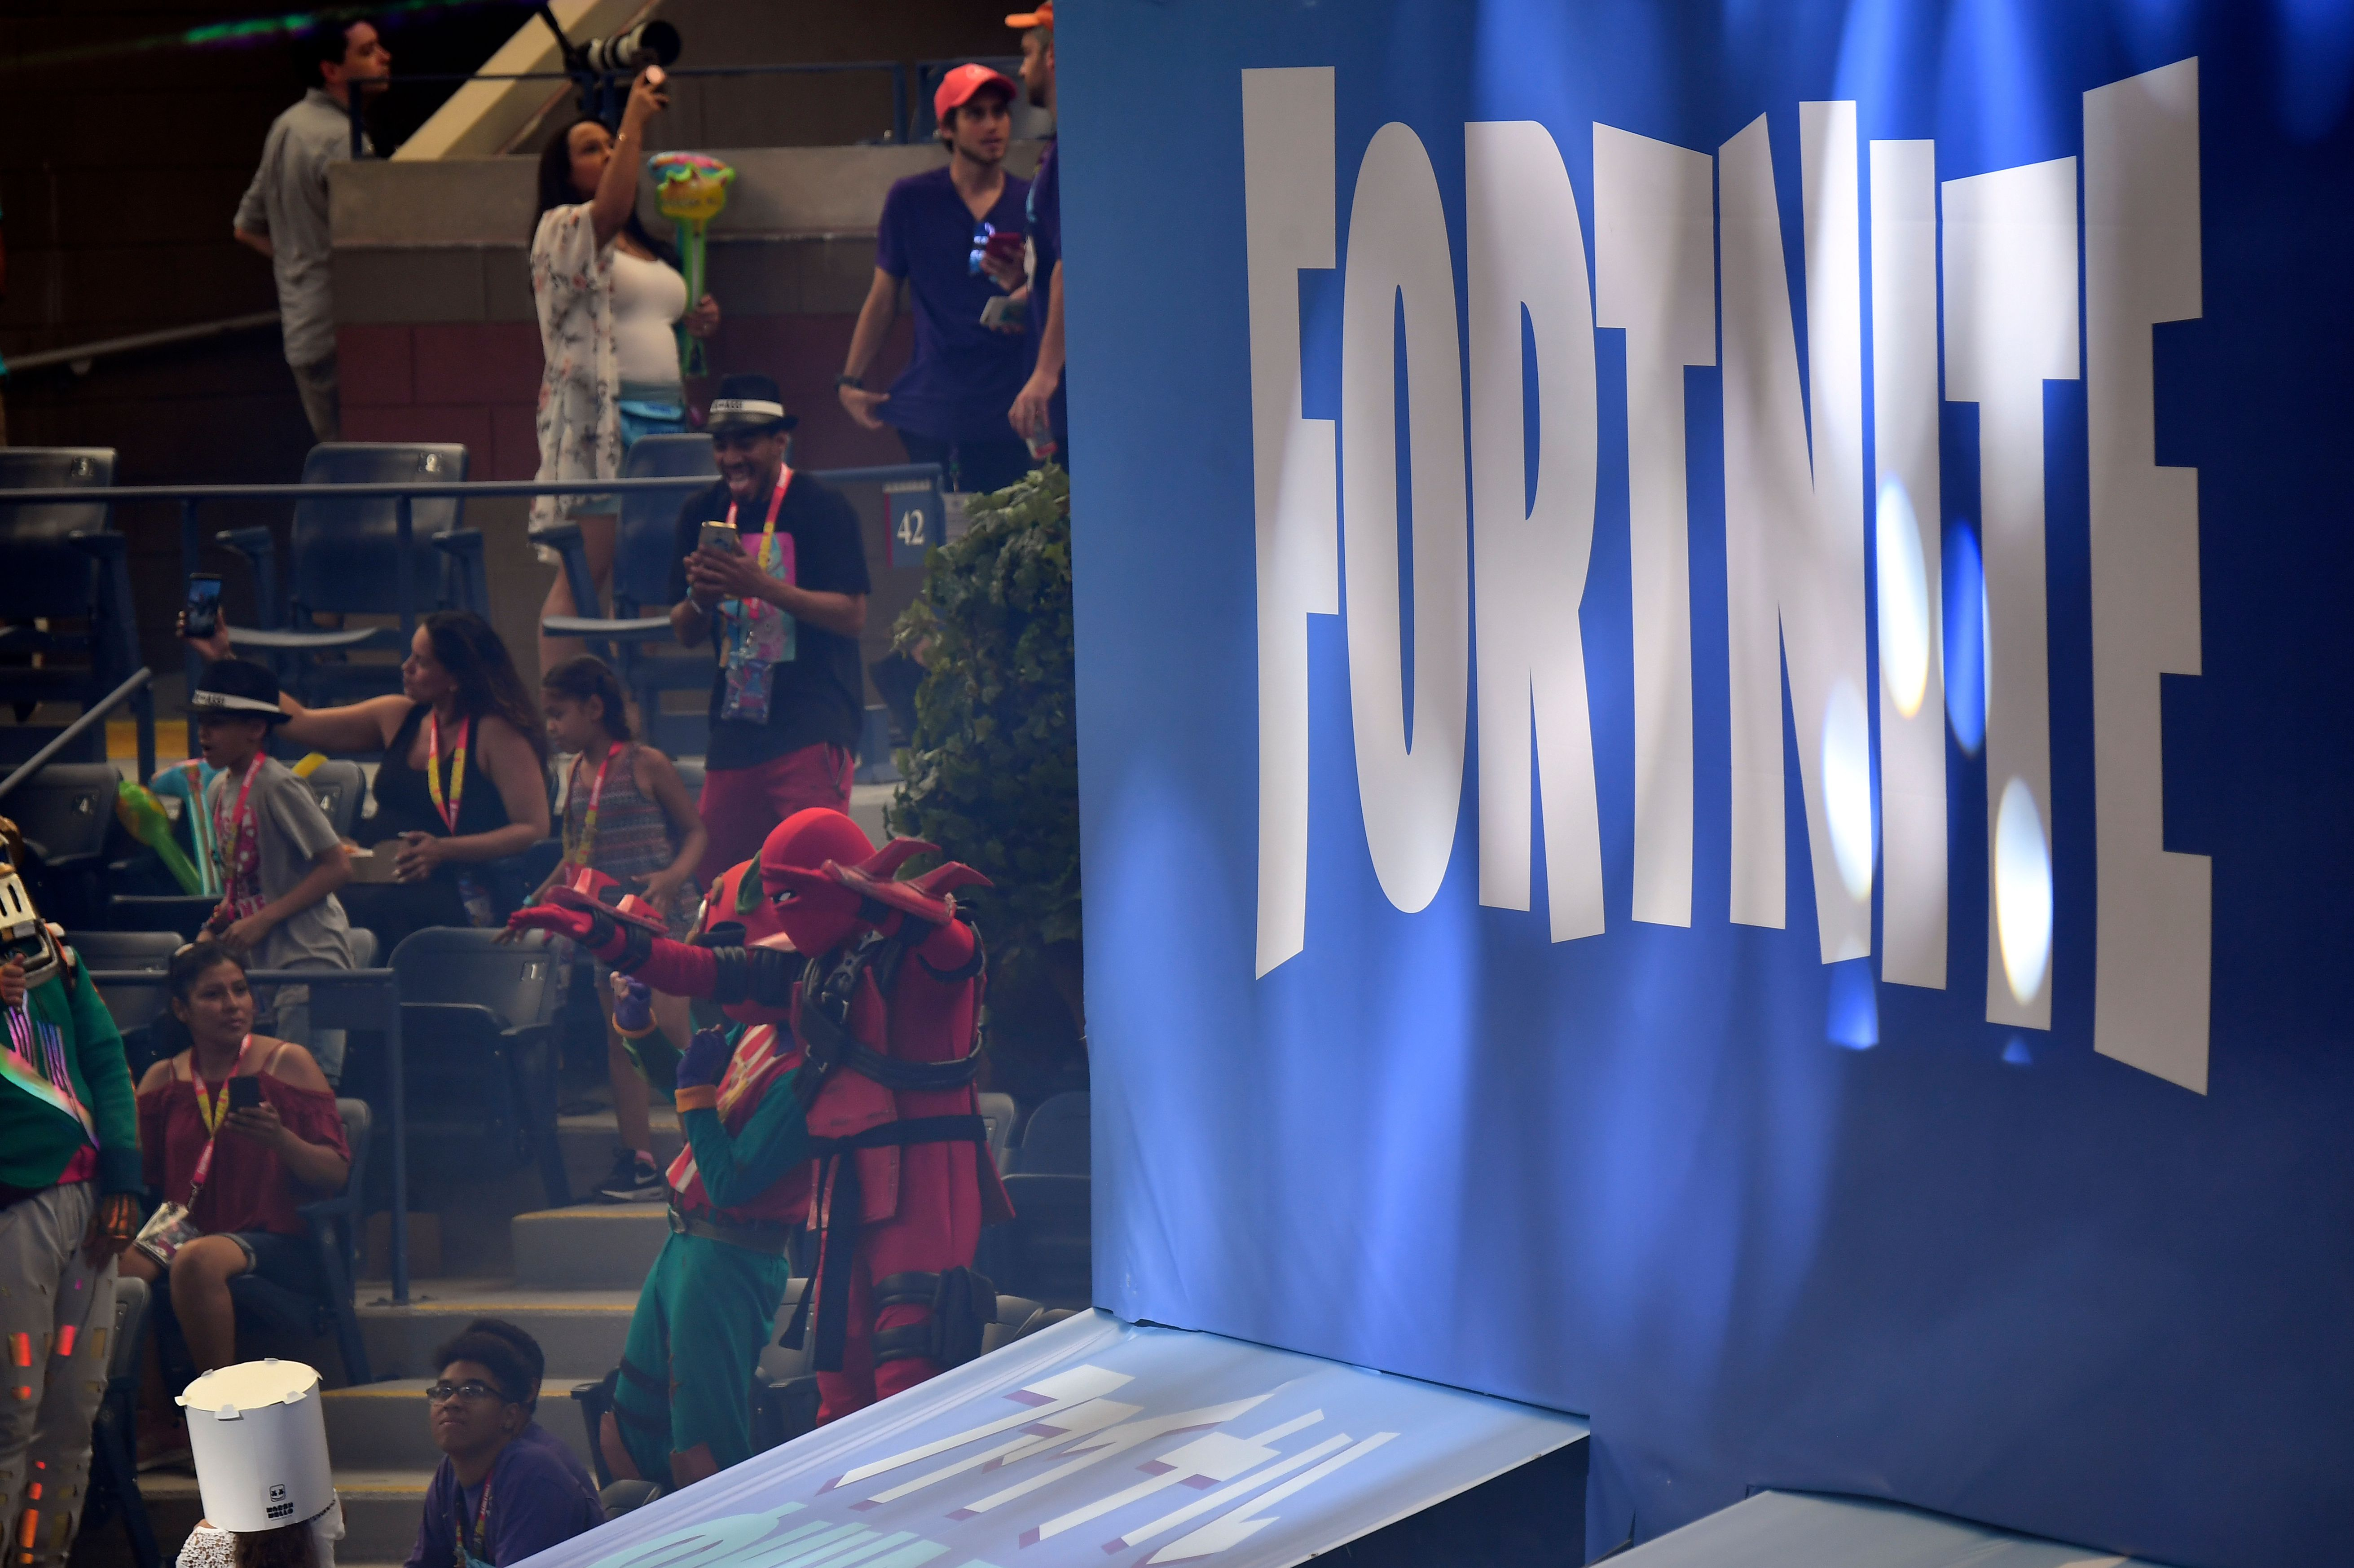 The 2019 Fortnite World Cup in July